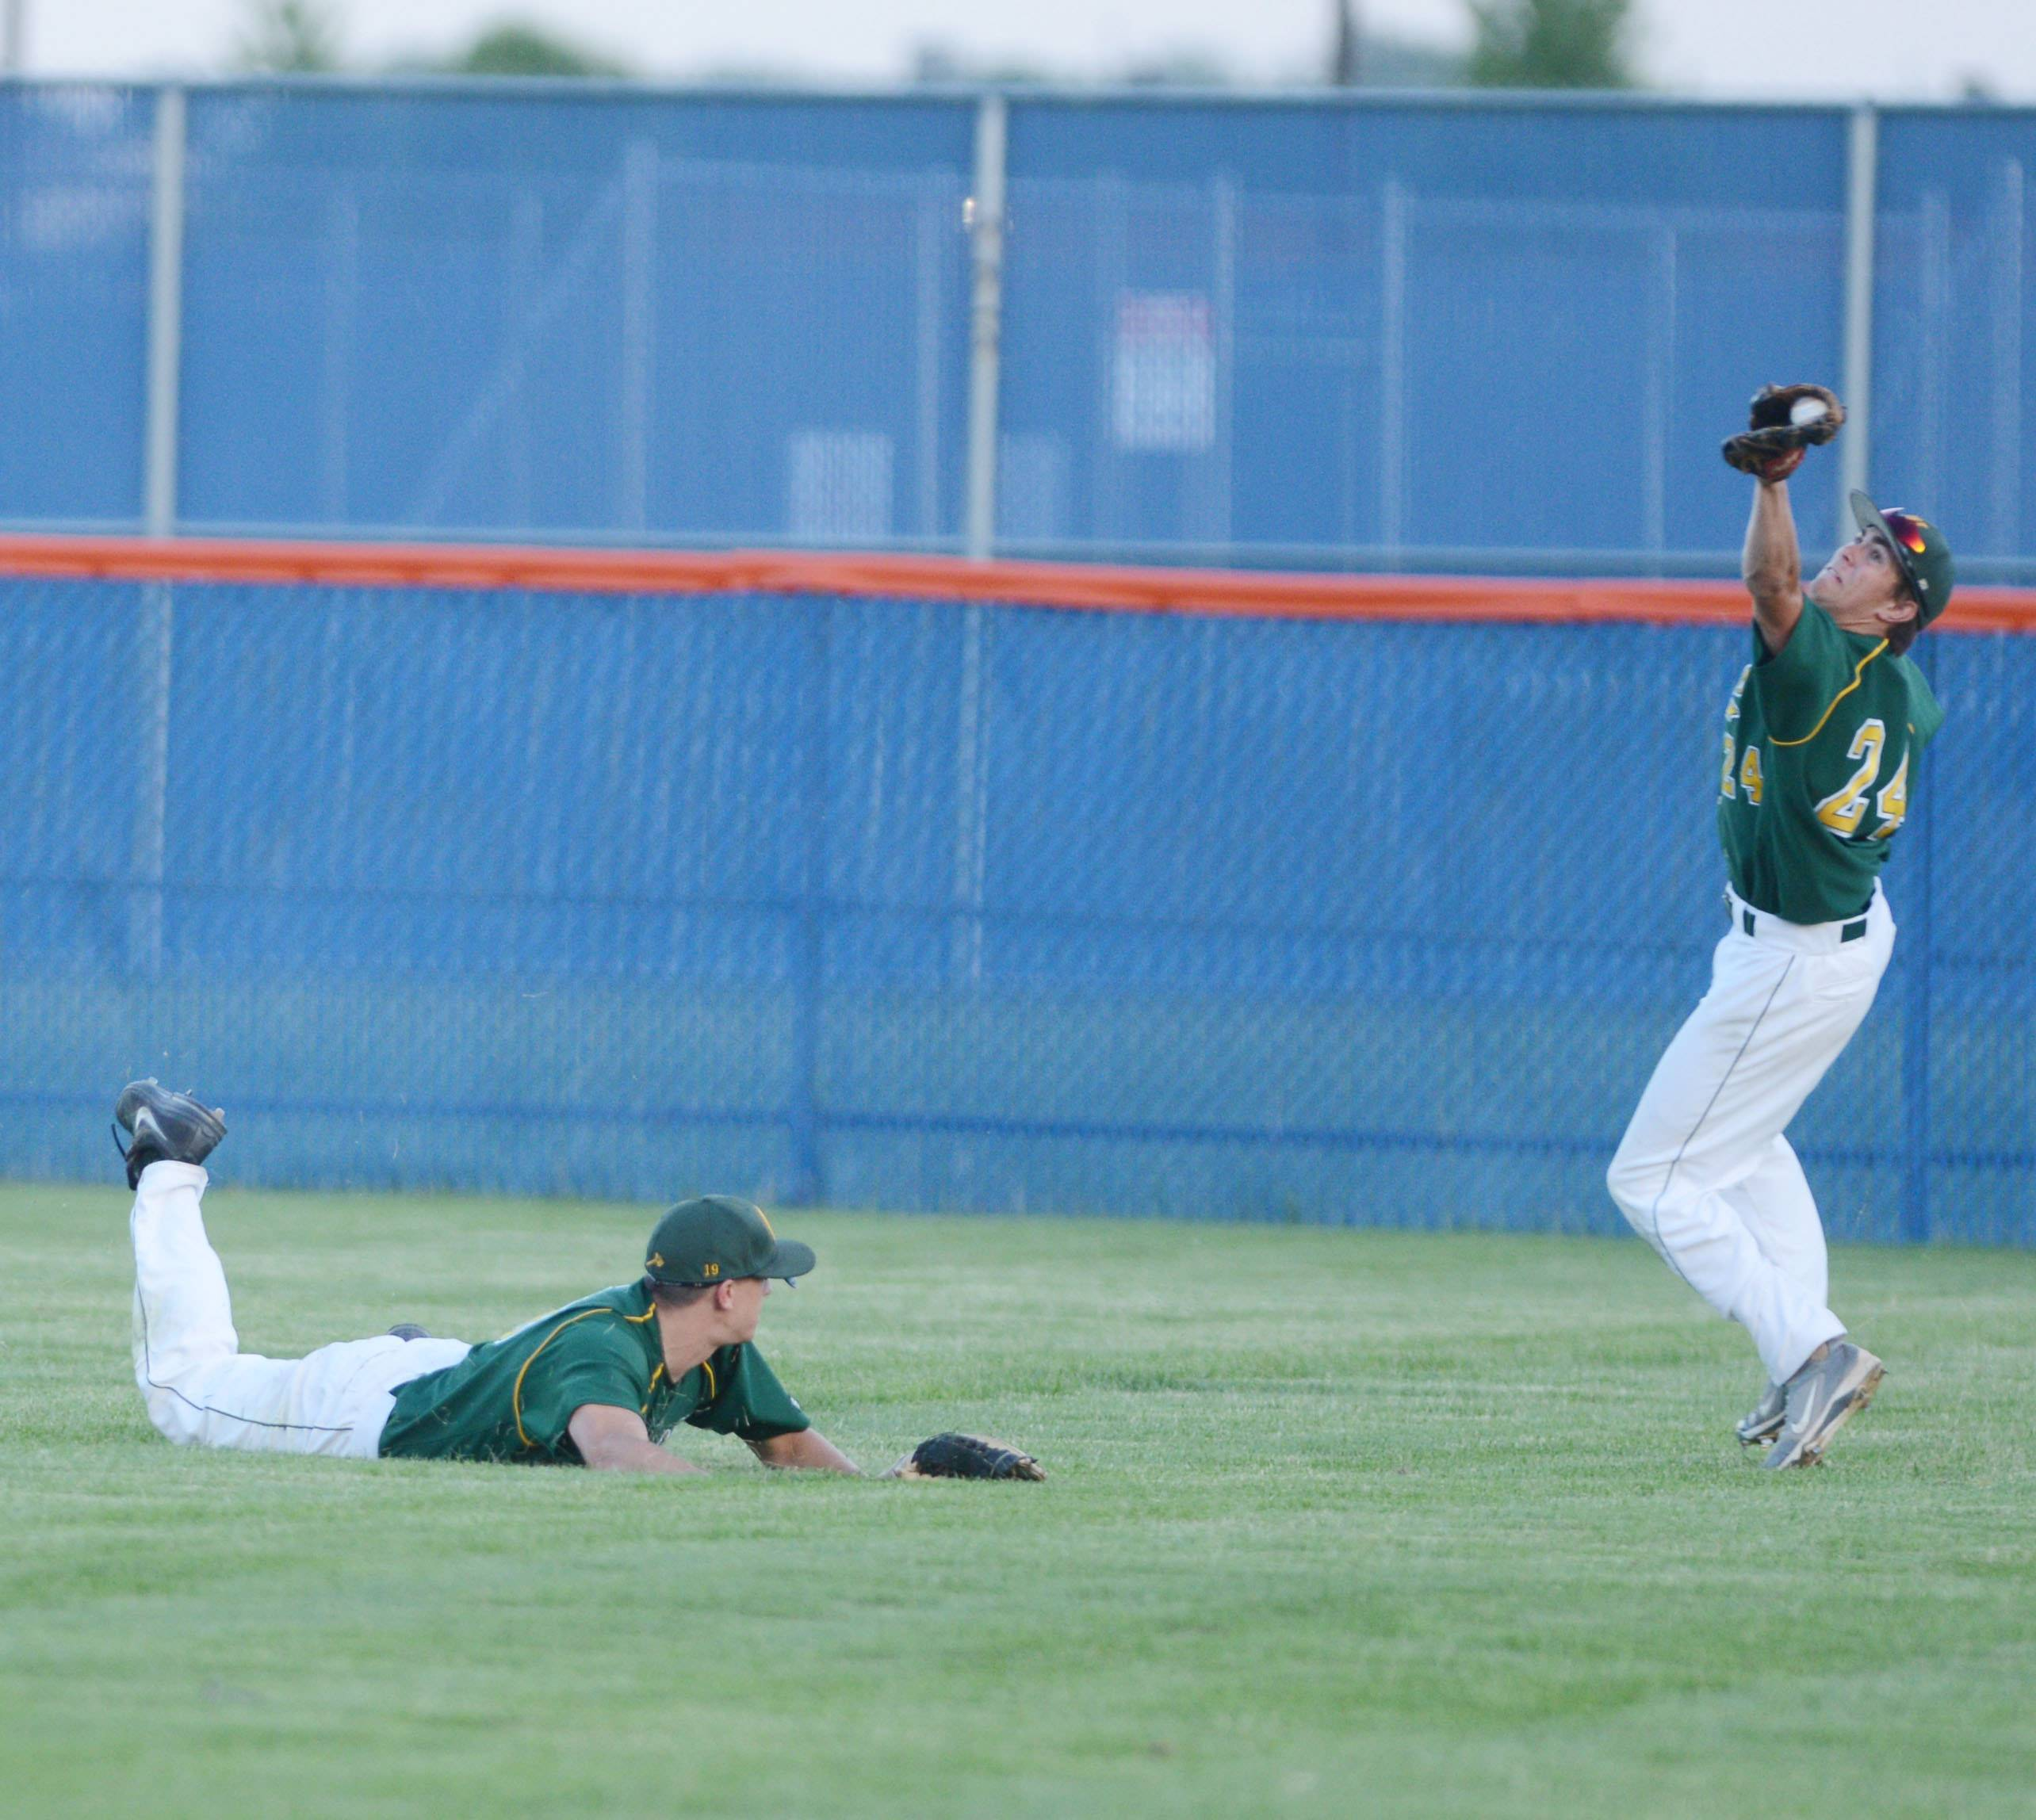 #18 Jack Eddy,left, and #24 Ryan Strick of Waubonsie dive for the ball during the Waubonsie Valley vs. Downers Grove South at Class 4A Oswego baseball sectional semifinal Thursday.